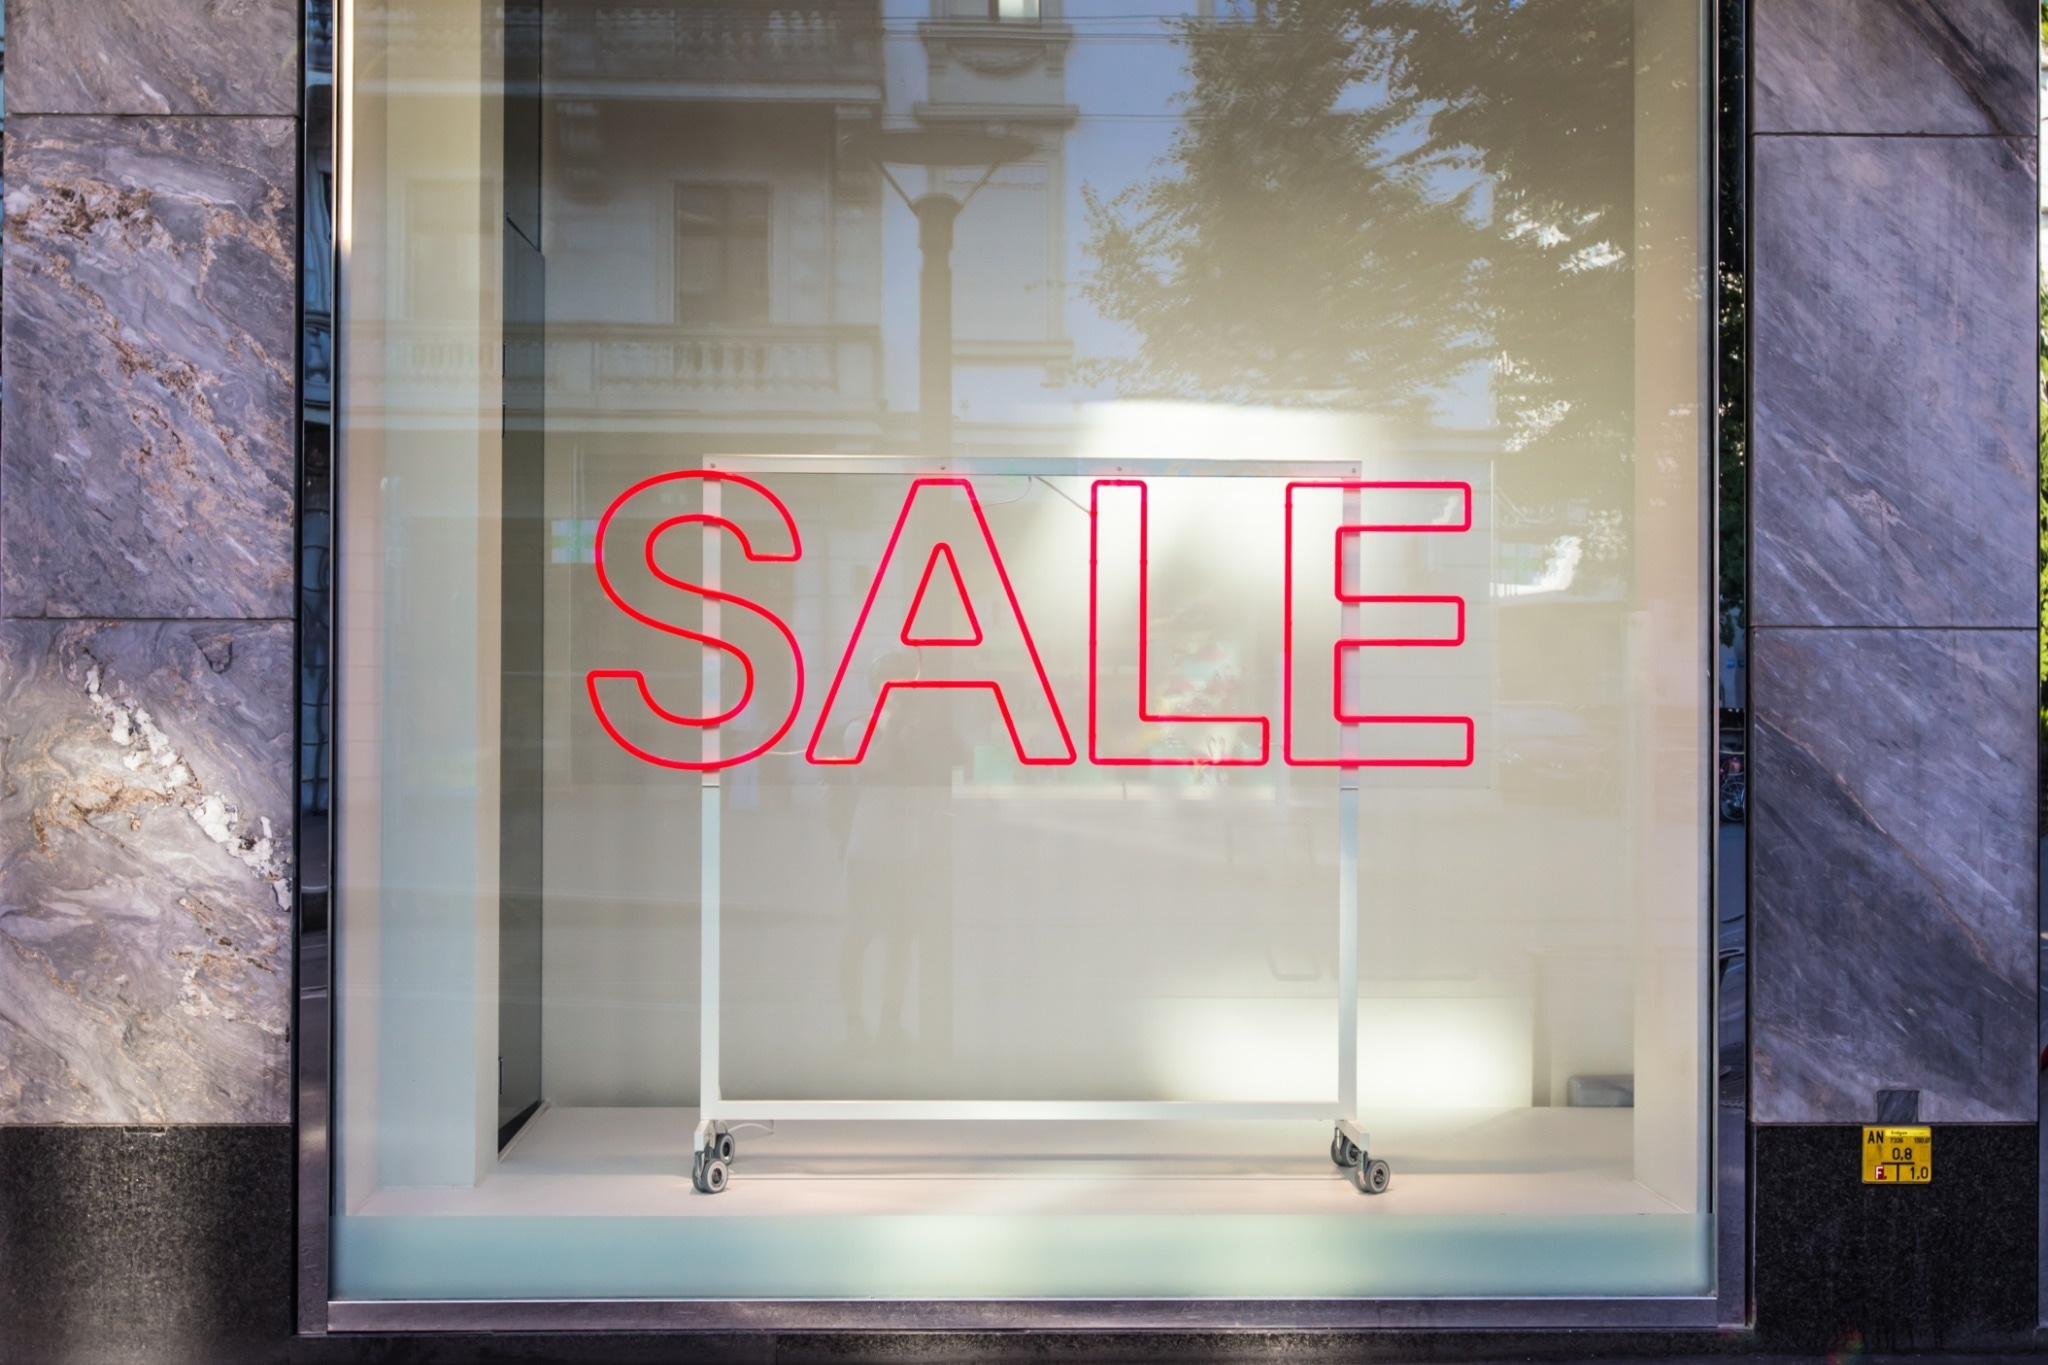 5 Stores You've Never Heard Of That Give Amazing Discounts